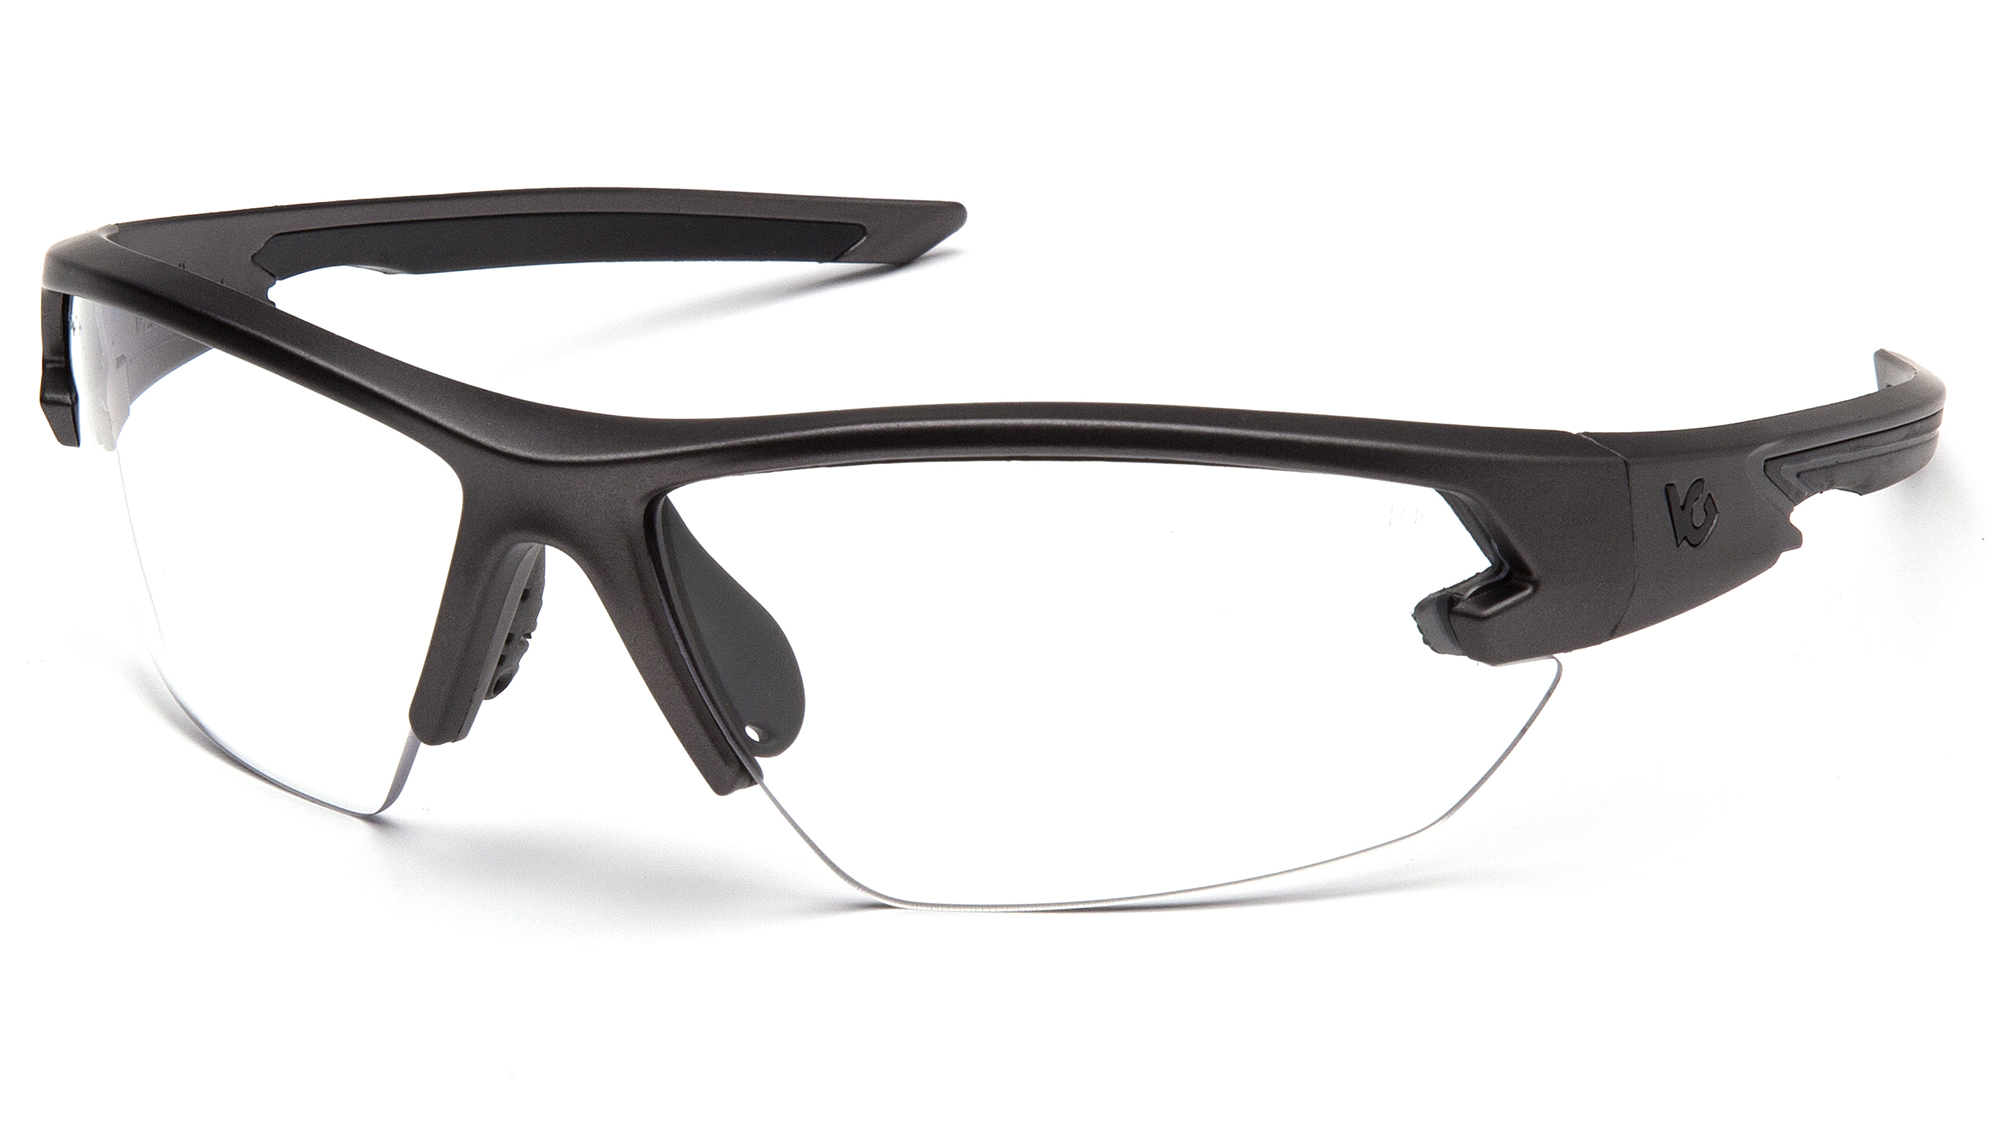 Venturegear Tactical - Semtex 2.0 Safety Glasses - Clear Anti-Fog Lens with Gun Metal Frame